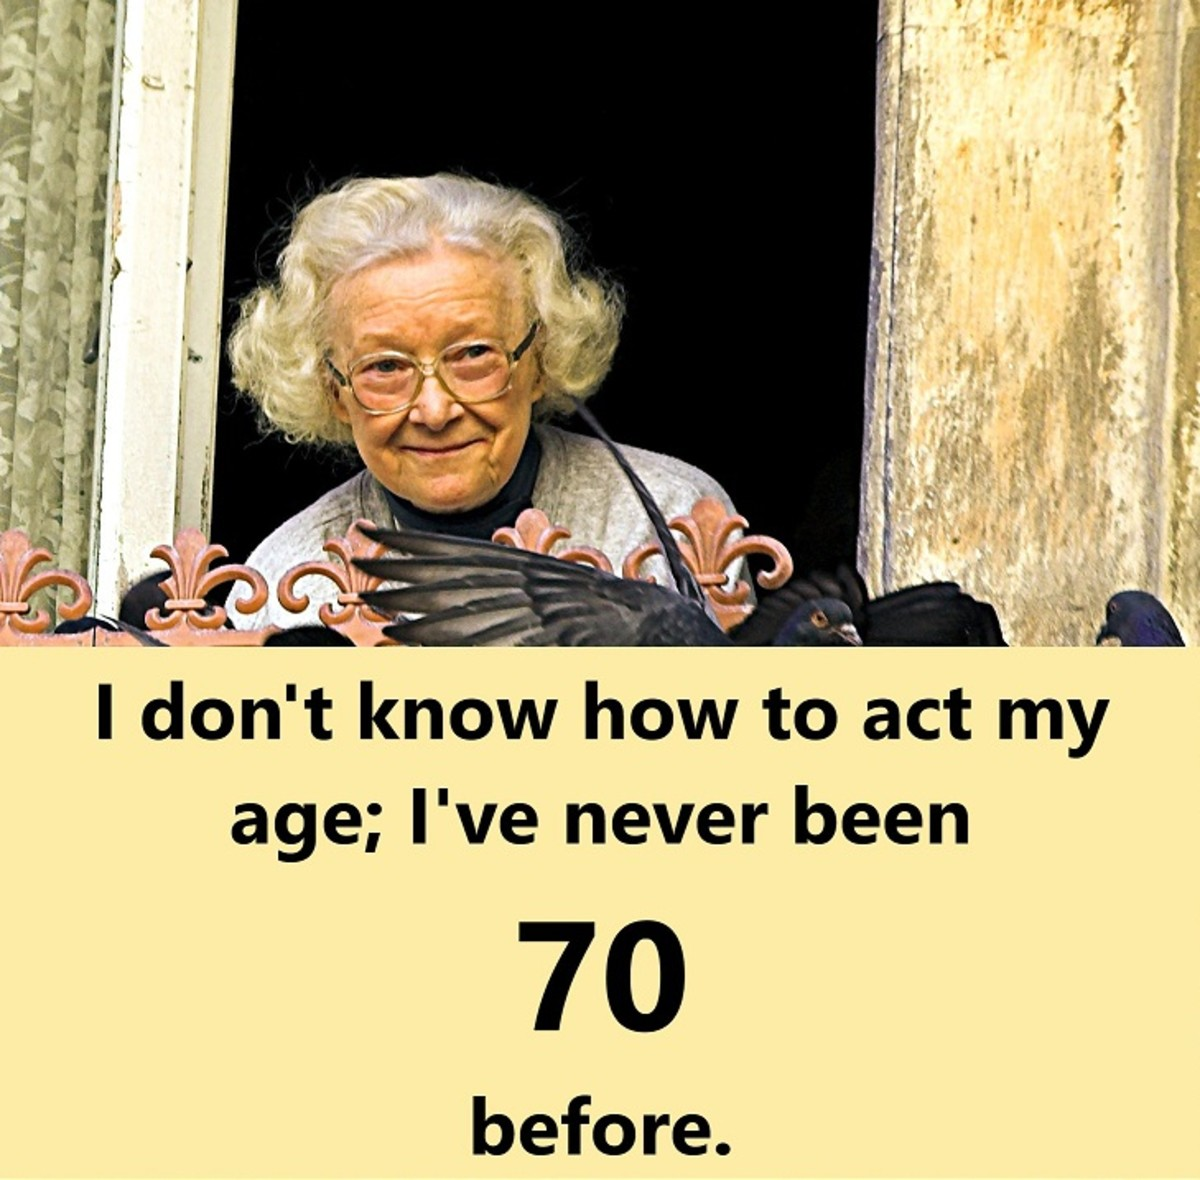 I've never been 70 before.